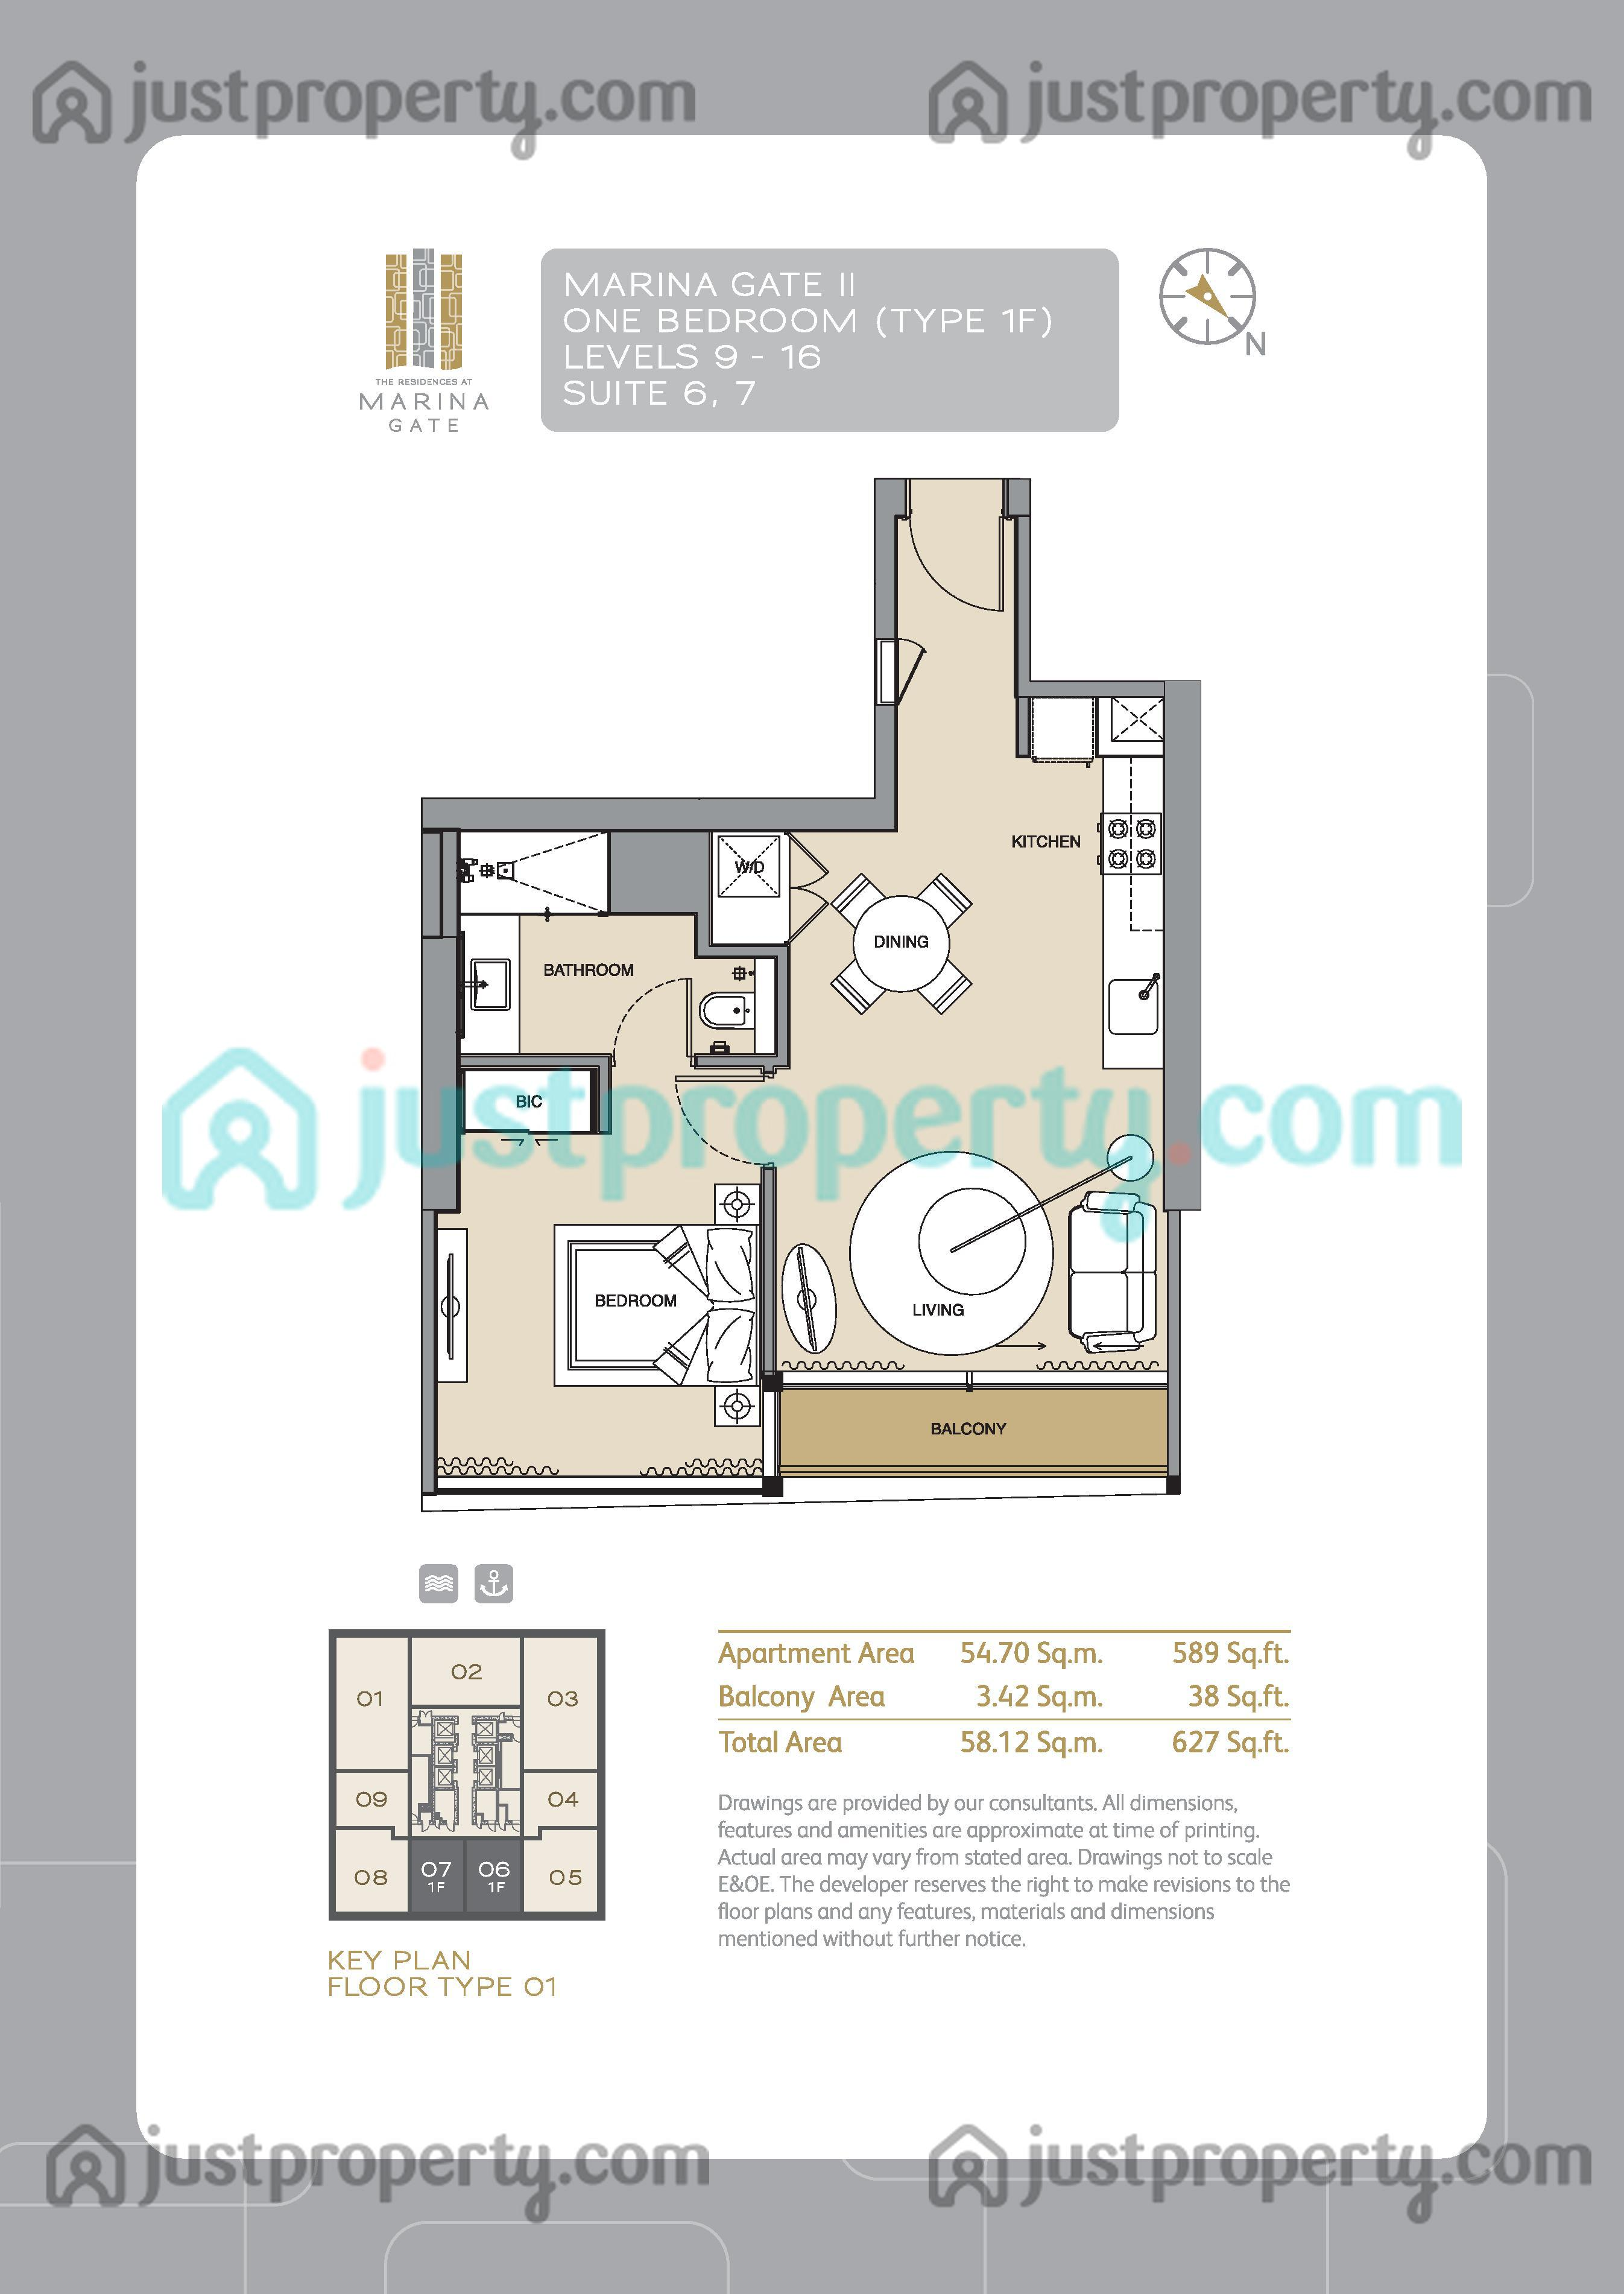 Marina Gate Tower 2 Floor Plans Justpropertycom